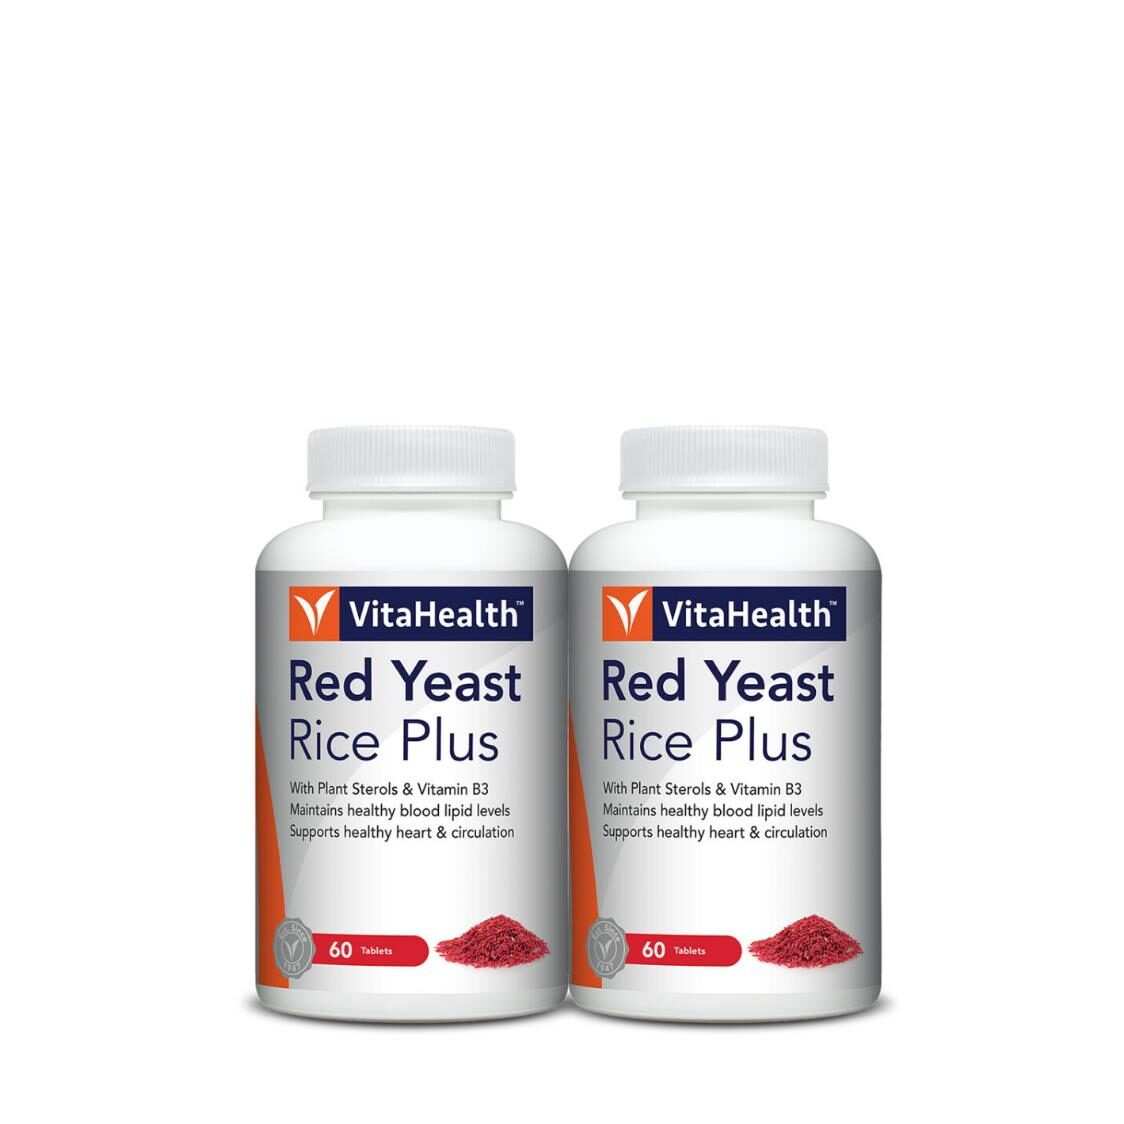 VitaHealth Red Yeast Rice Plus 60 Tablets